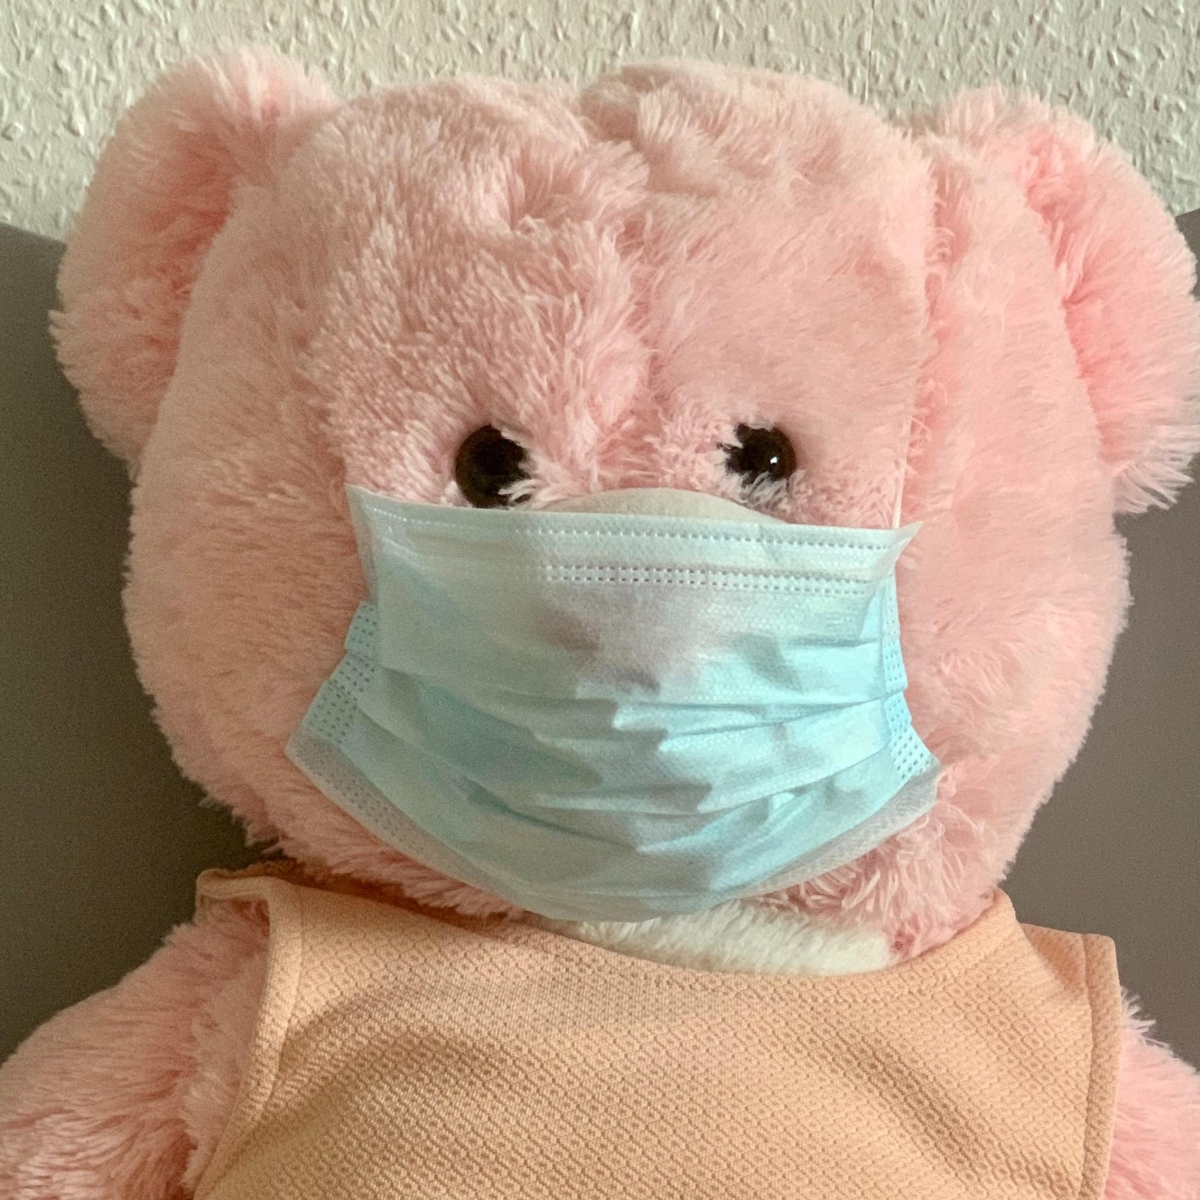 teddy bear wearing face mask